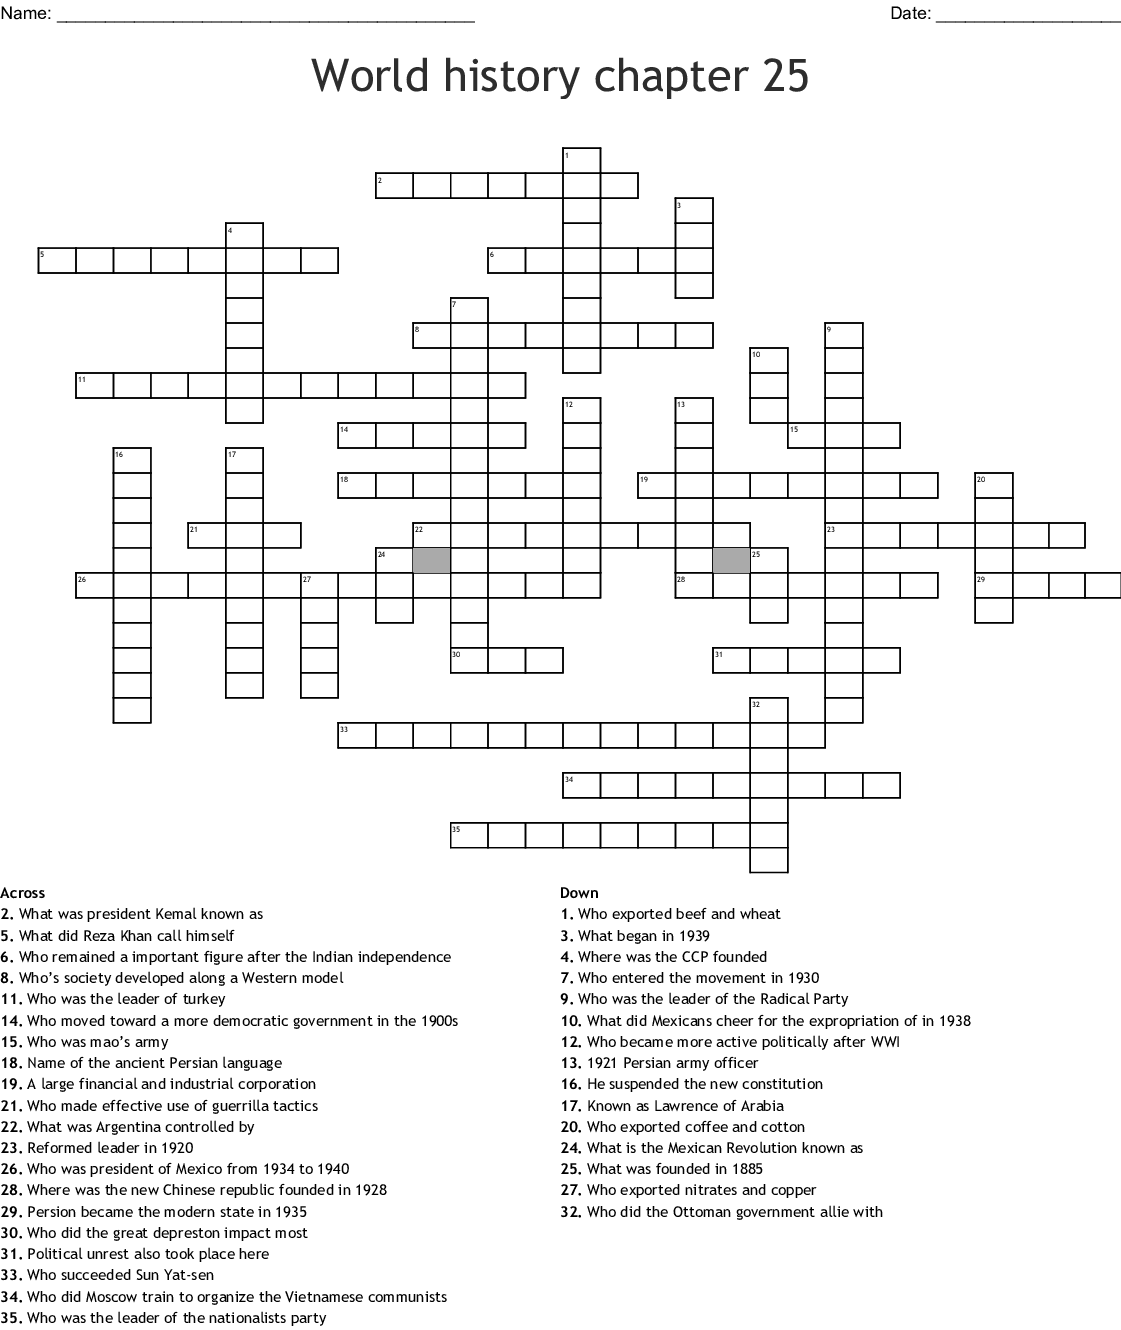 Chapter 25 The Industrial Revolution Crossword Puzzle